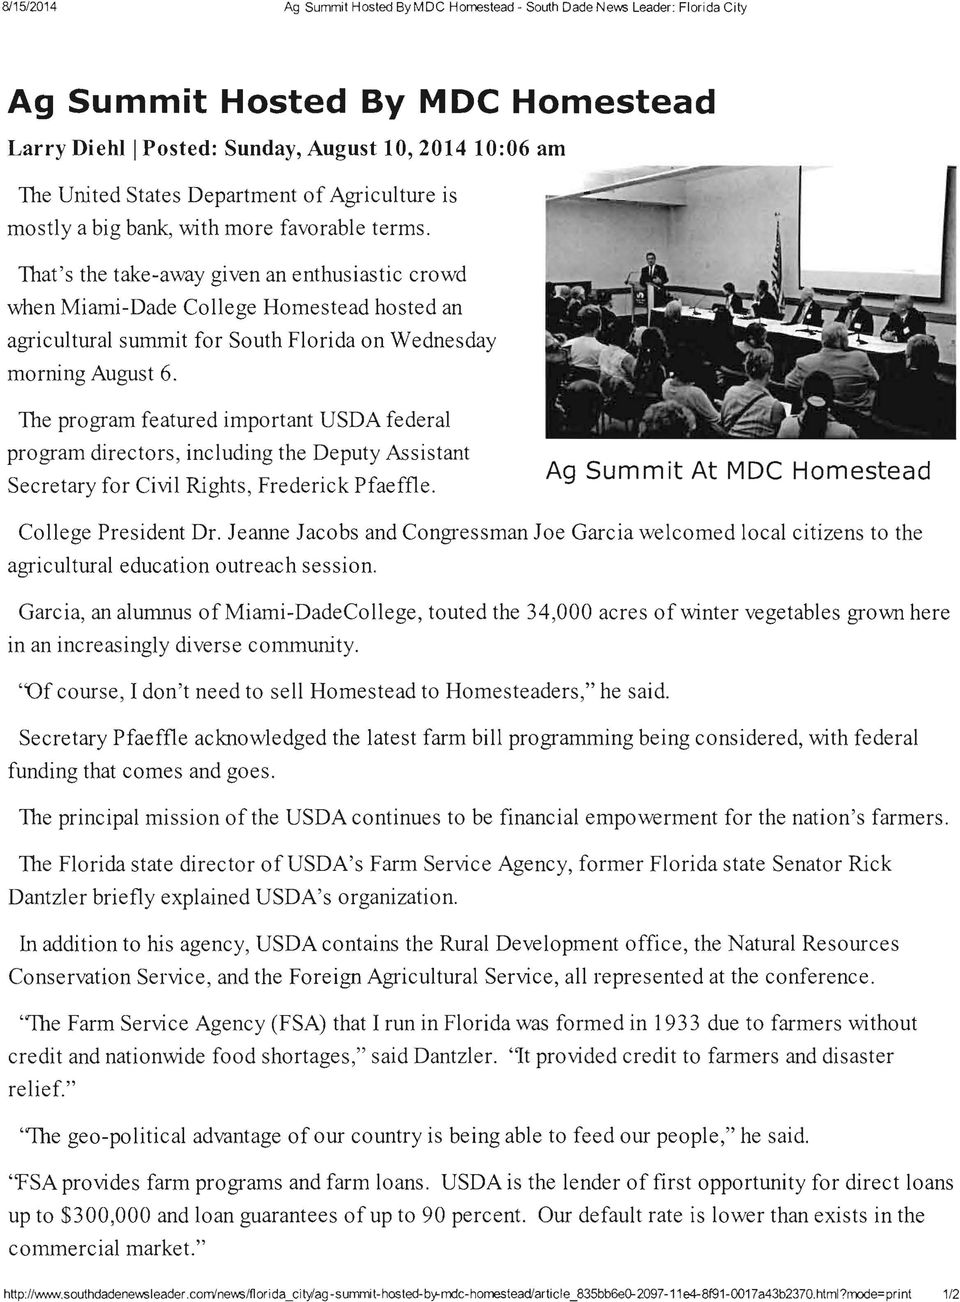 That's the take-away given an enthusiastic crowd when Miami-Dade College Homestead hosted an agricultural summit for South Florida on Wednesday morning August 6.